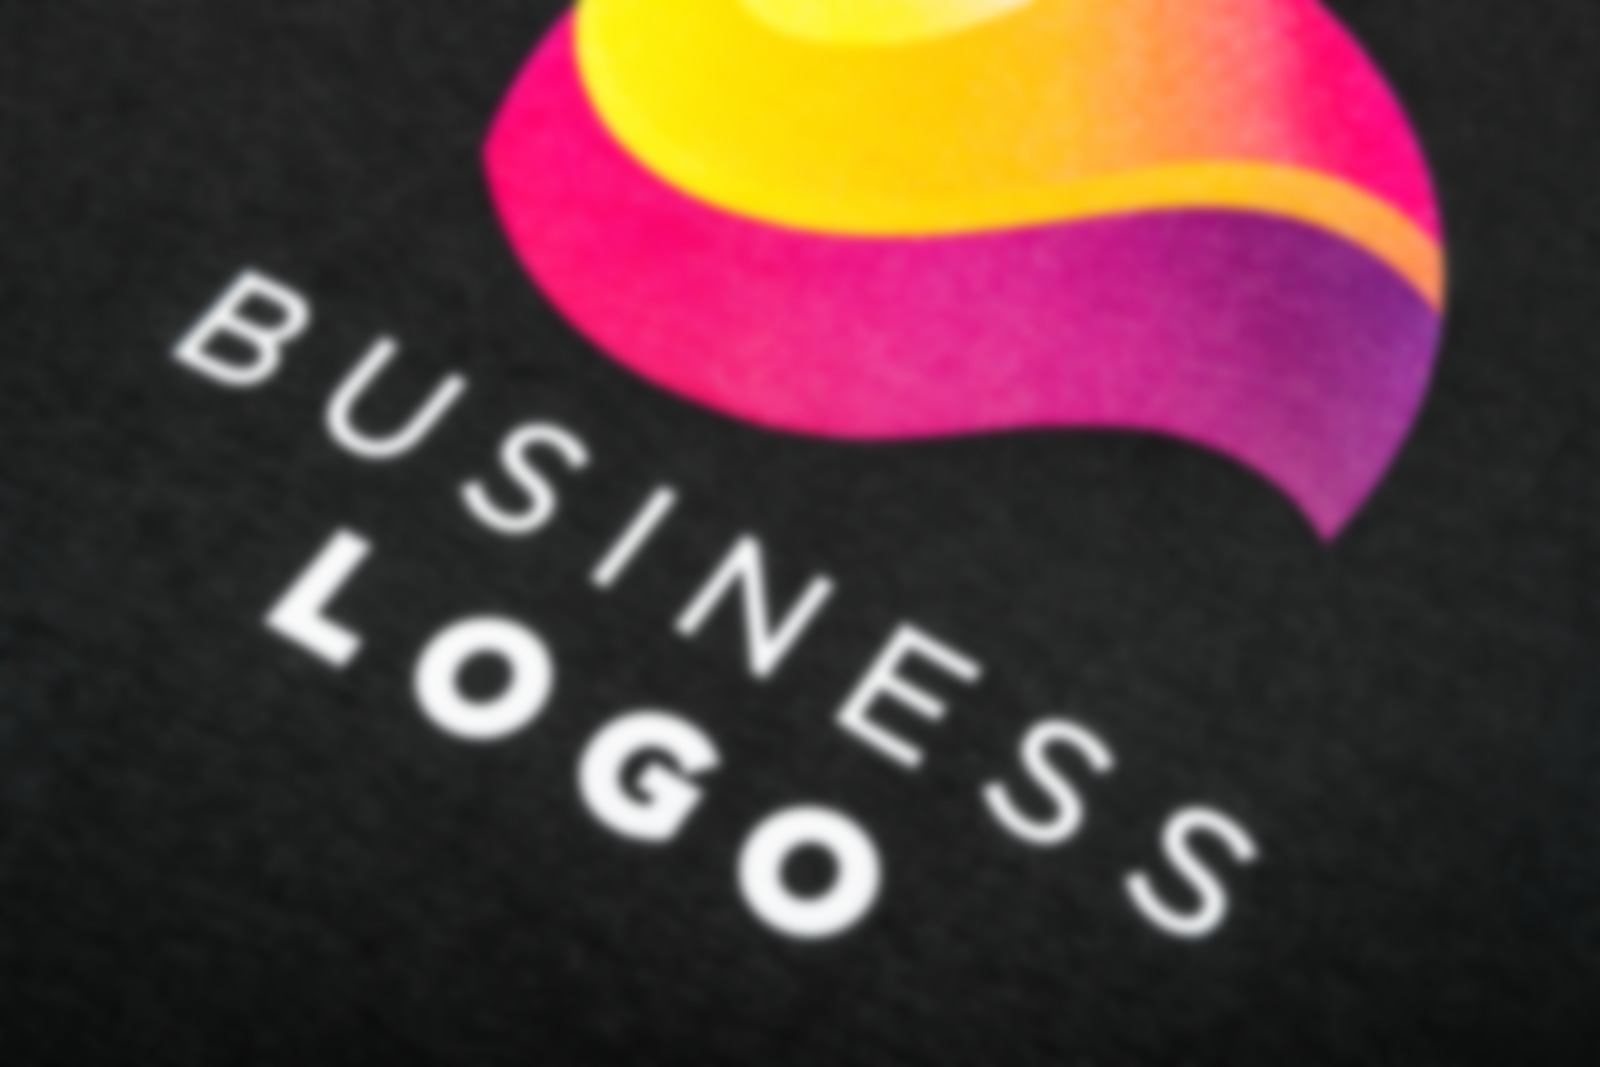 company logo printed with digital direct printing technology